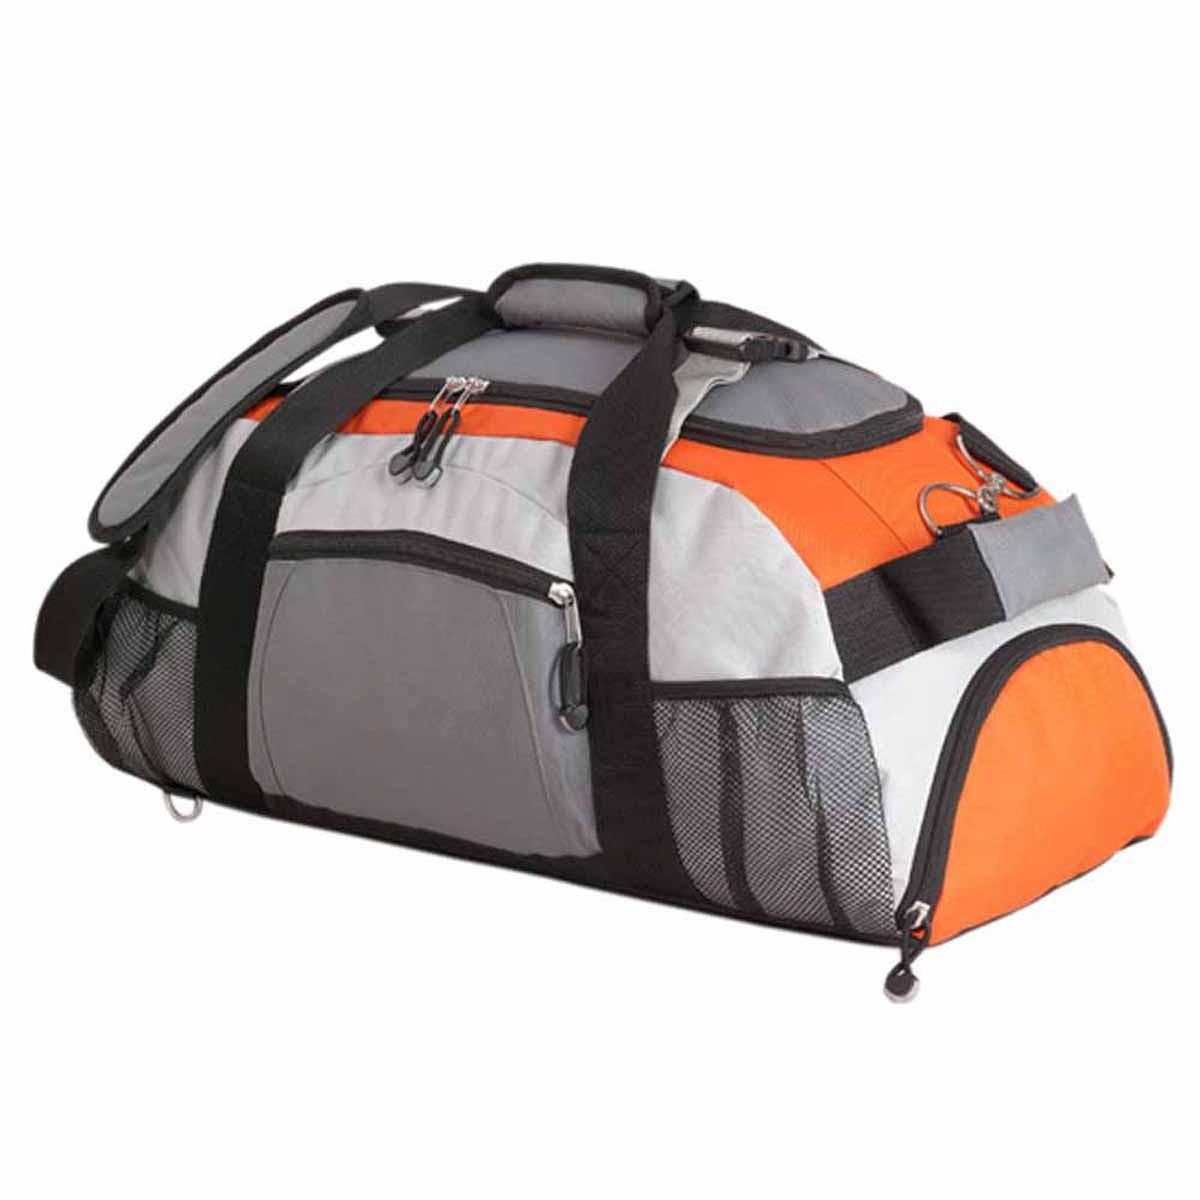 sac de sport sac de voyage 45 l shugon athena 1588 orange. Black Bedroom Furniture Sets. Home Design Ideas